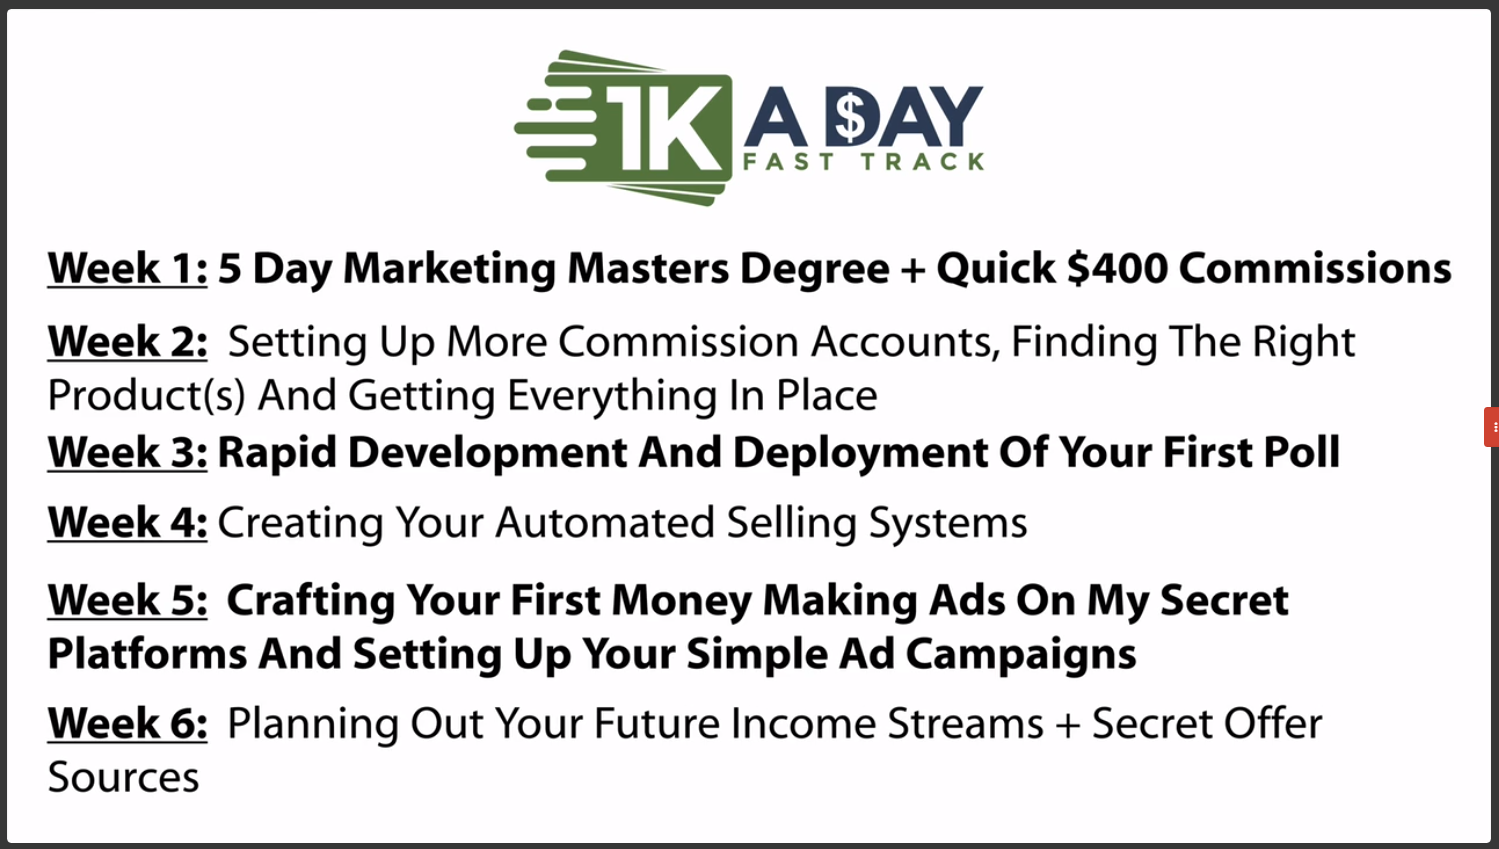 Latest 1k A Day Fast Track Training Program  Reviews